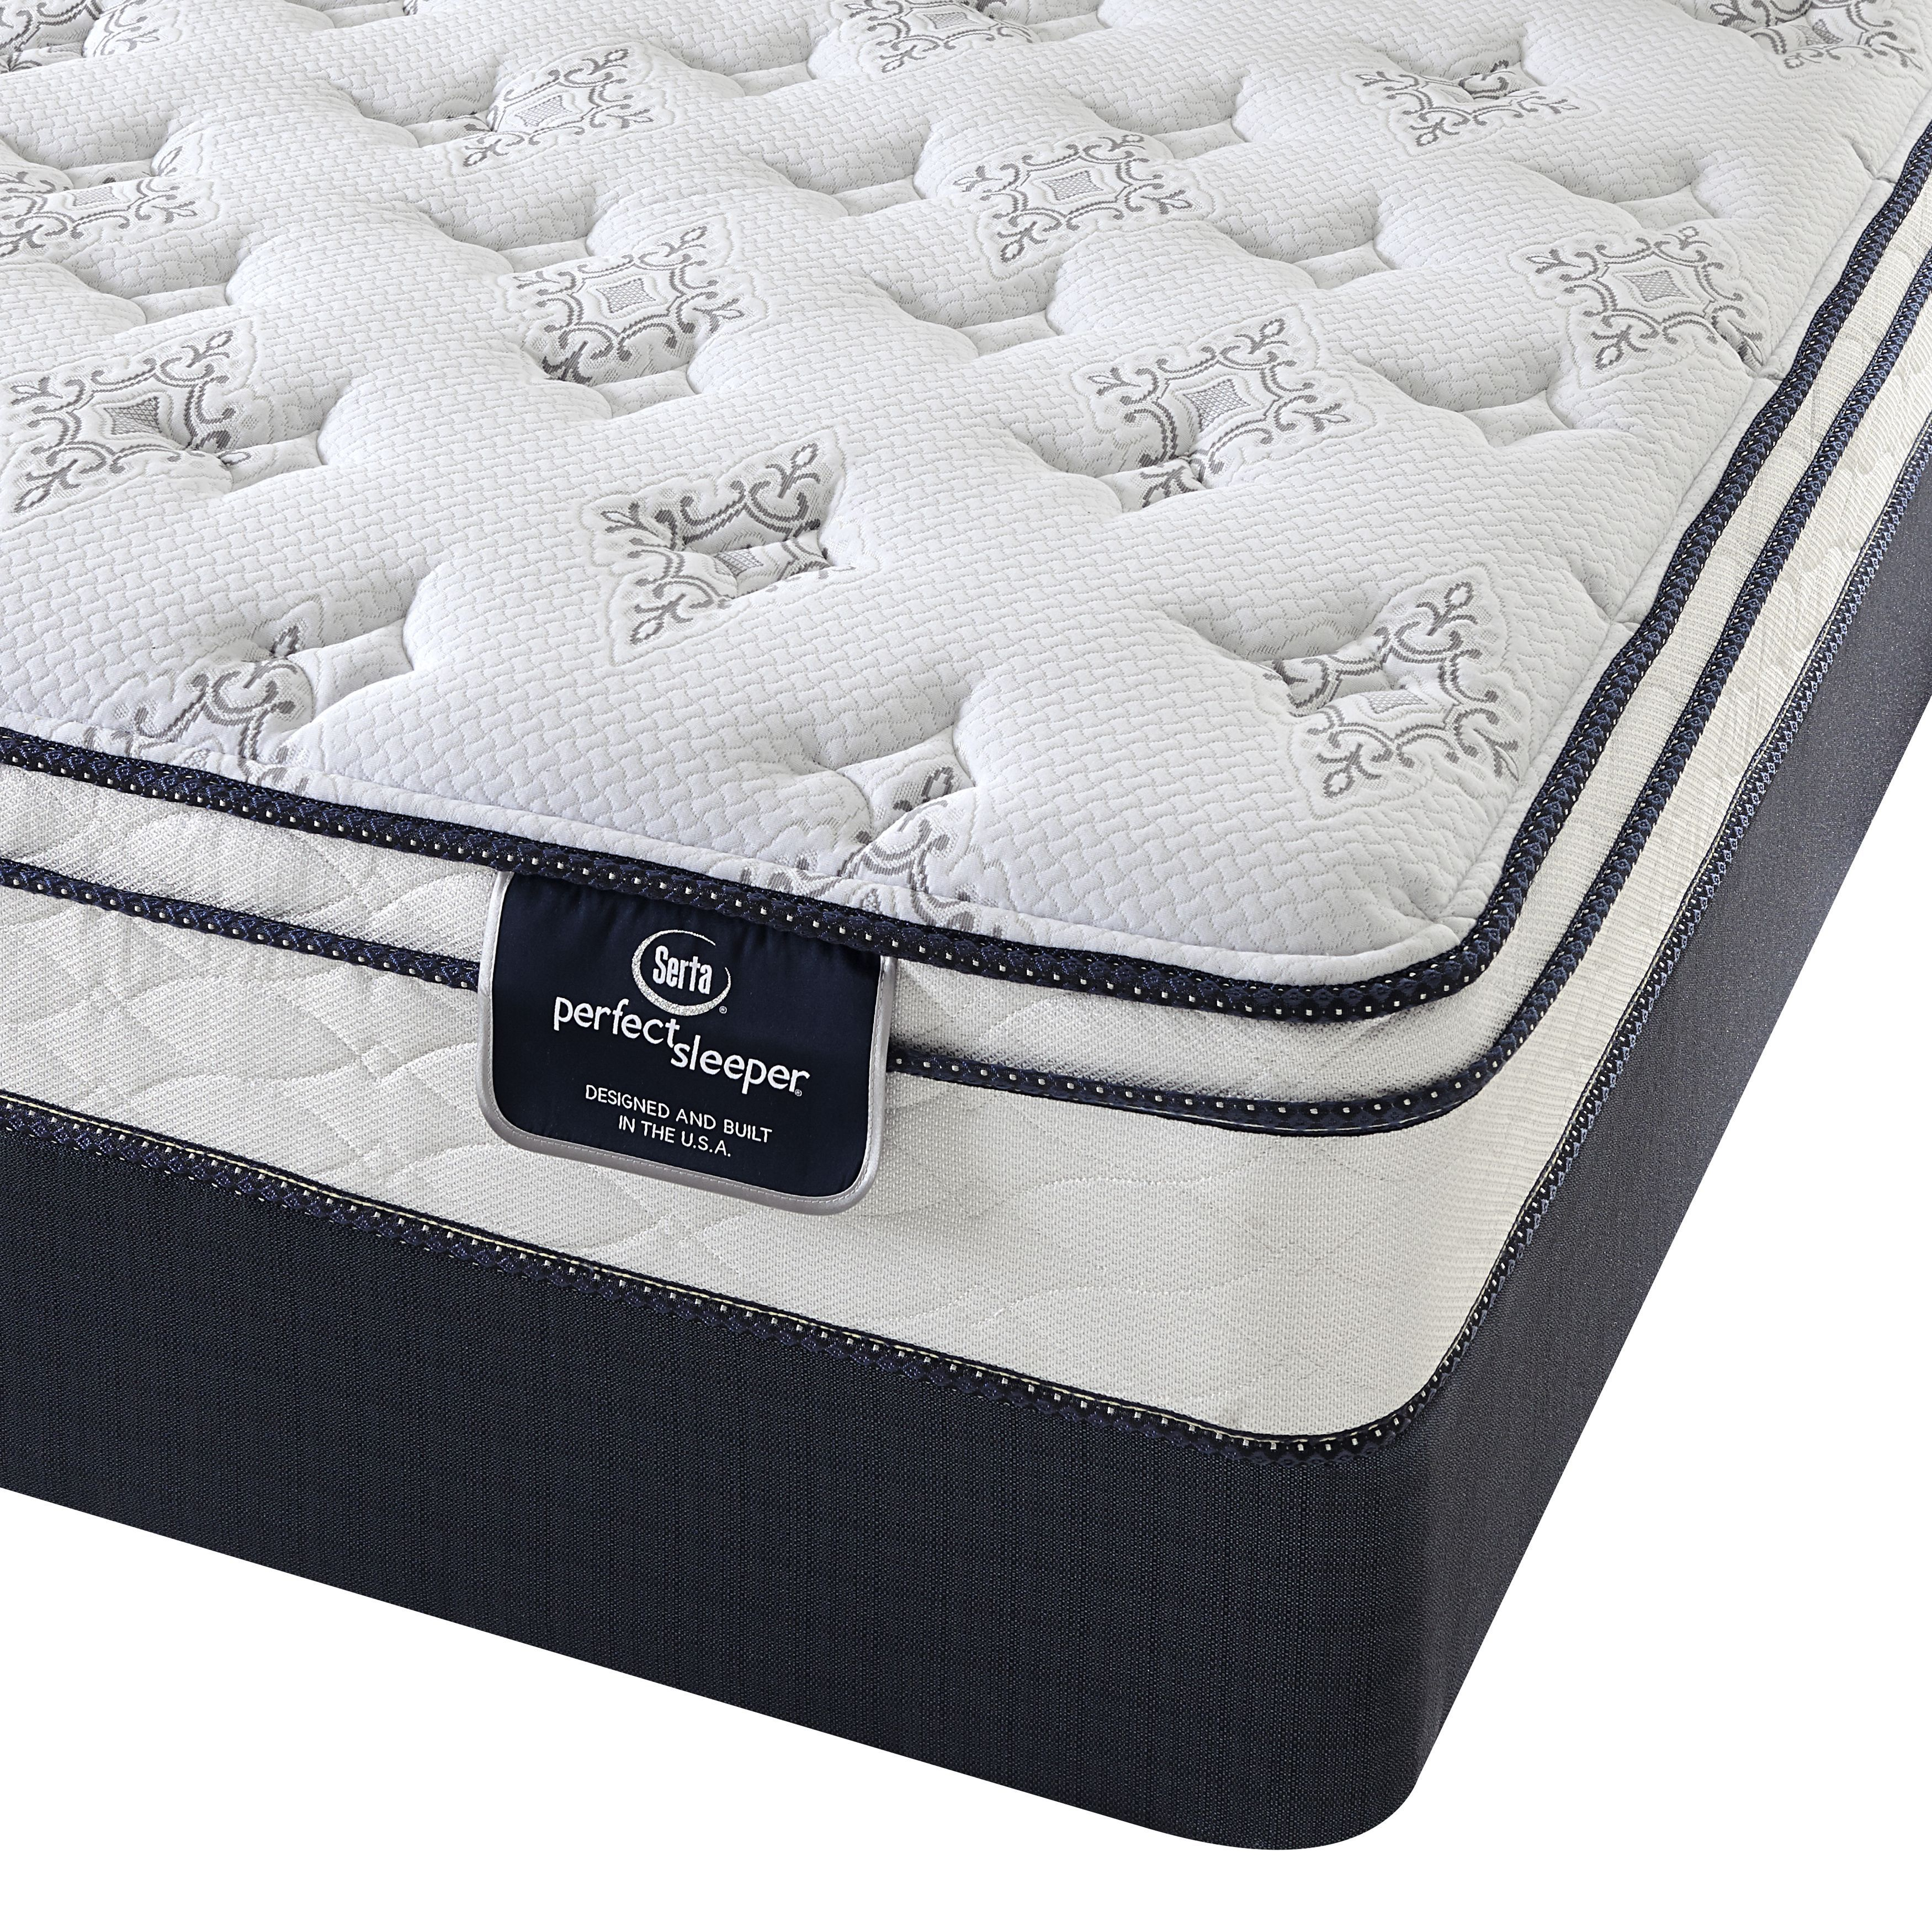 for mattress bed and platform set vanegroo size info full sale